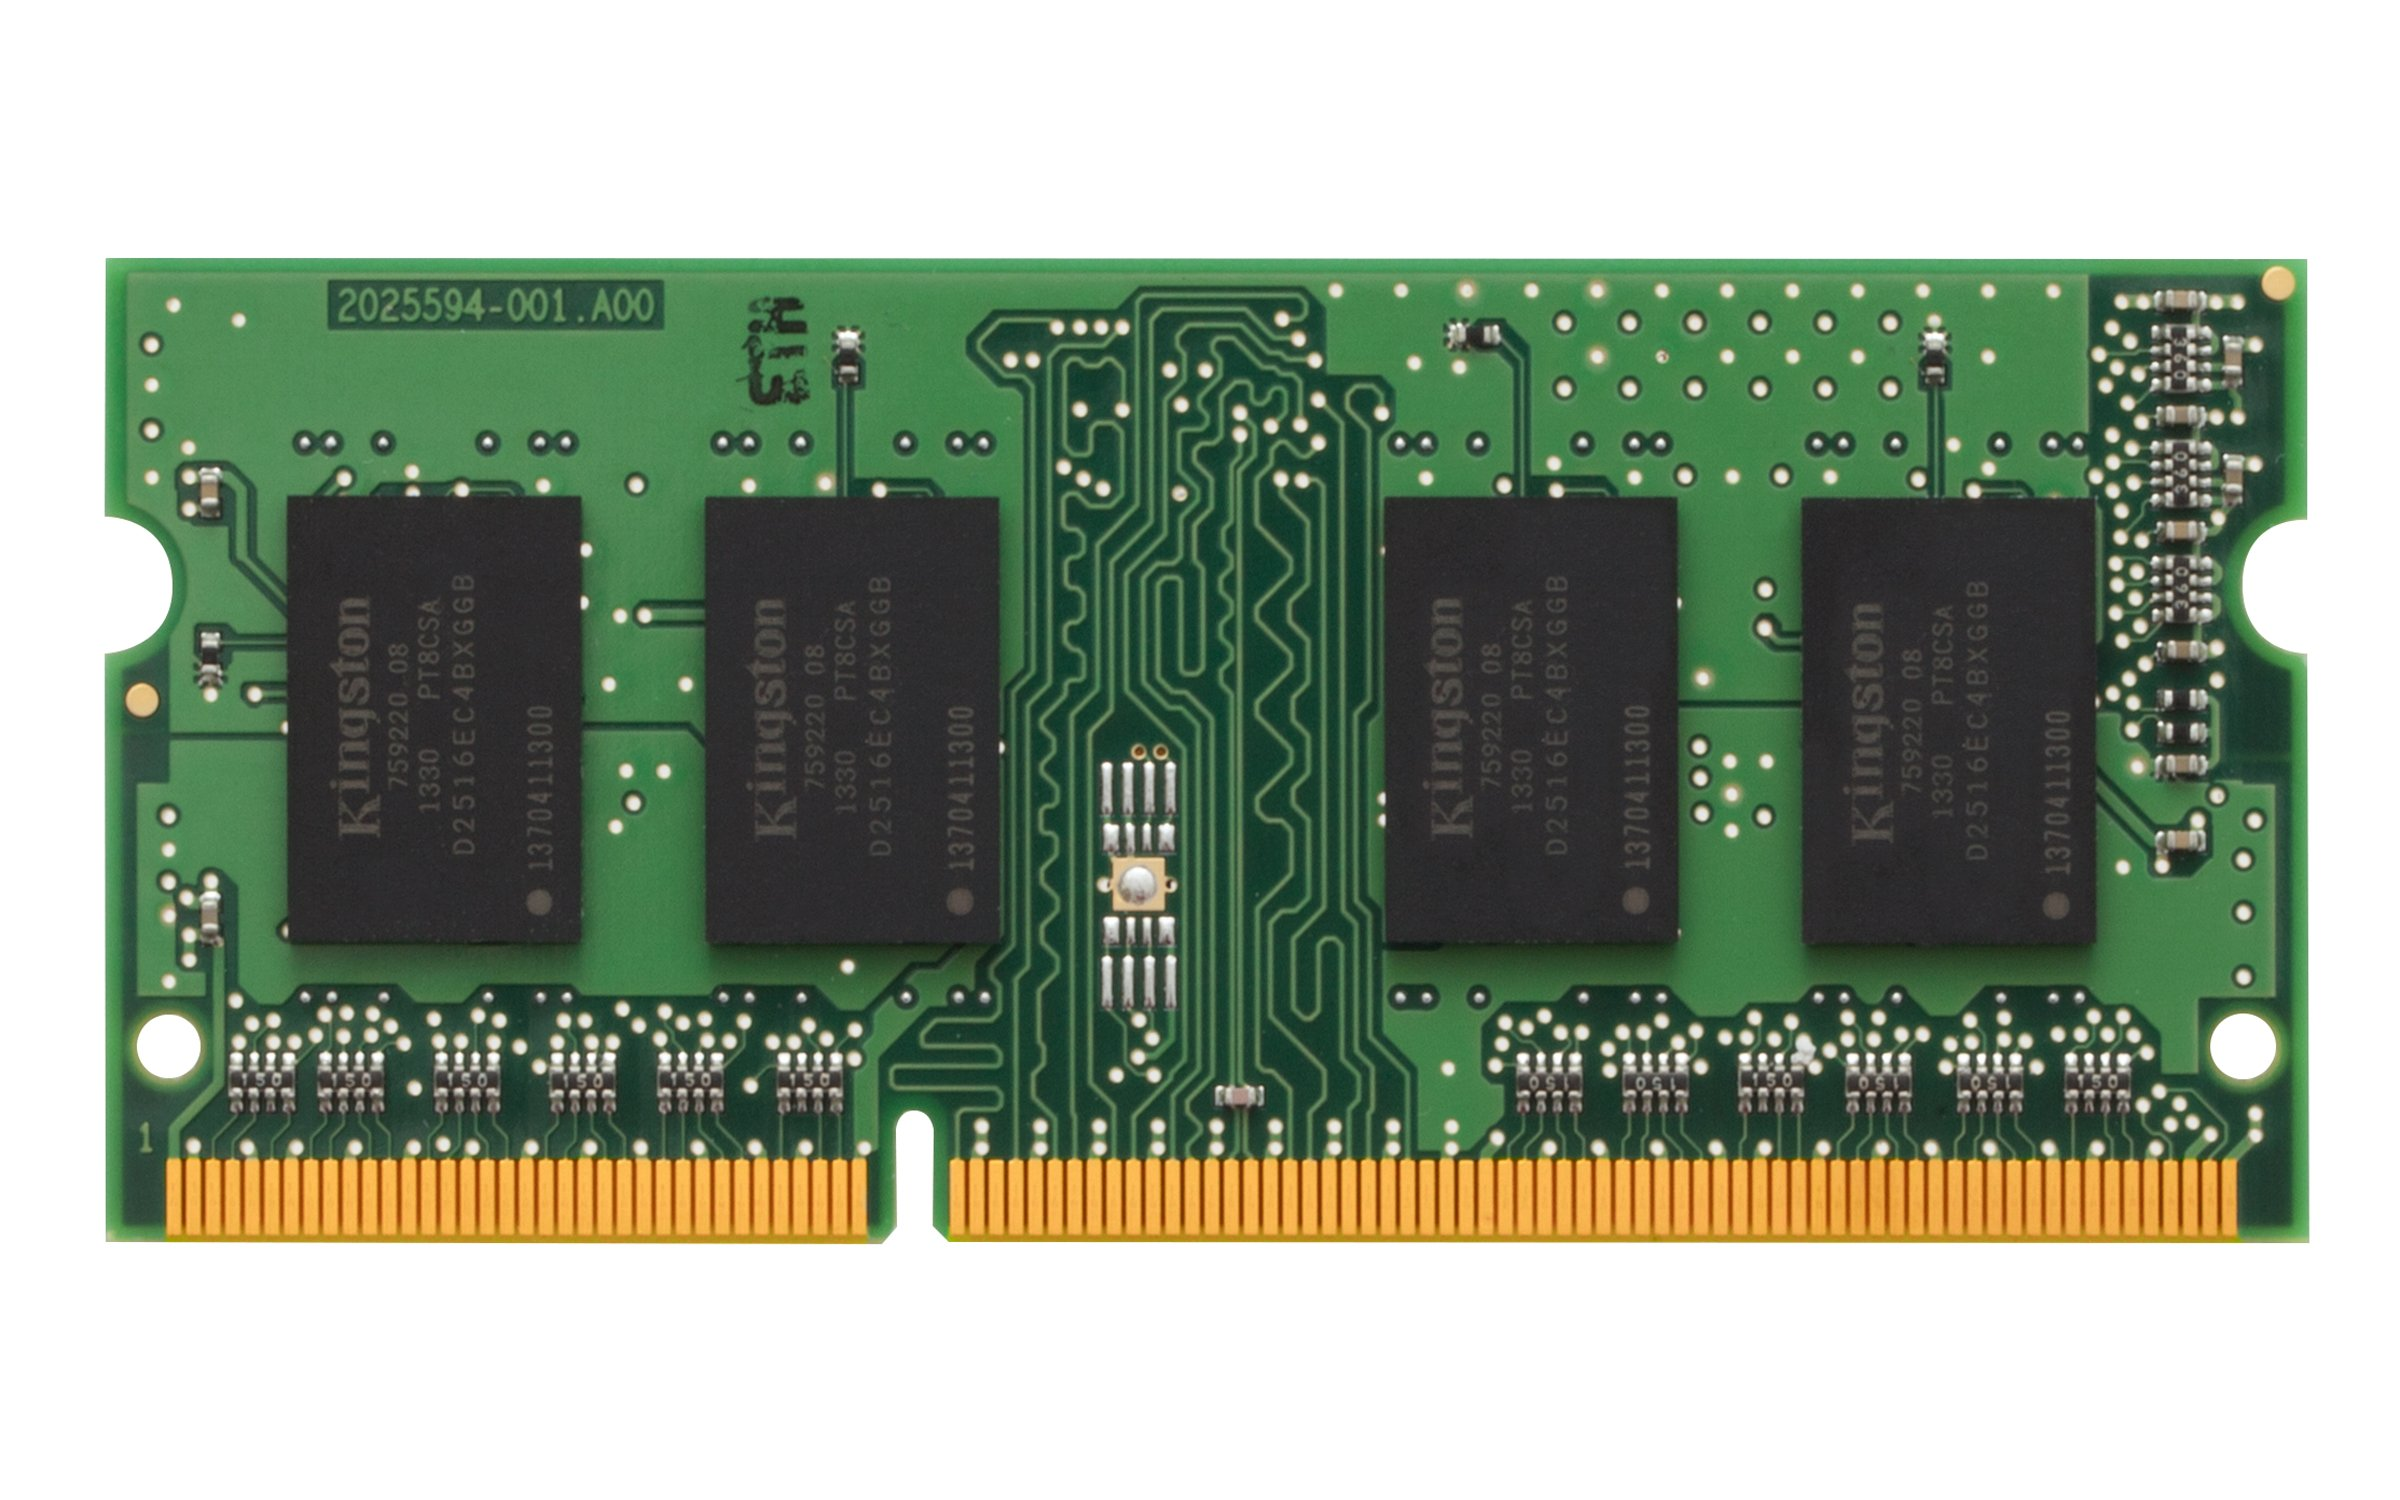 Kingston 4gb Module - Ddr3l 1600mhz - 4 Gb - Ddr3l Sdram - 1600 Mhz - 204-pin - Sodimm (kcp3l16ss8-4)